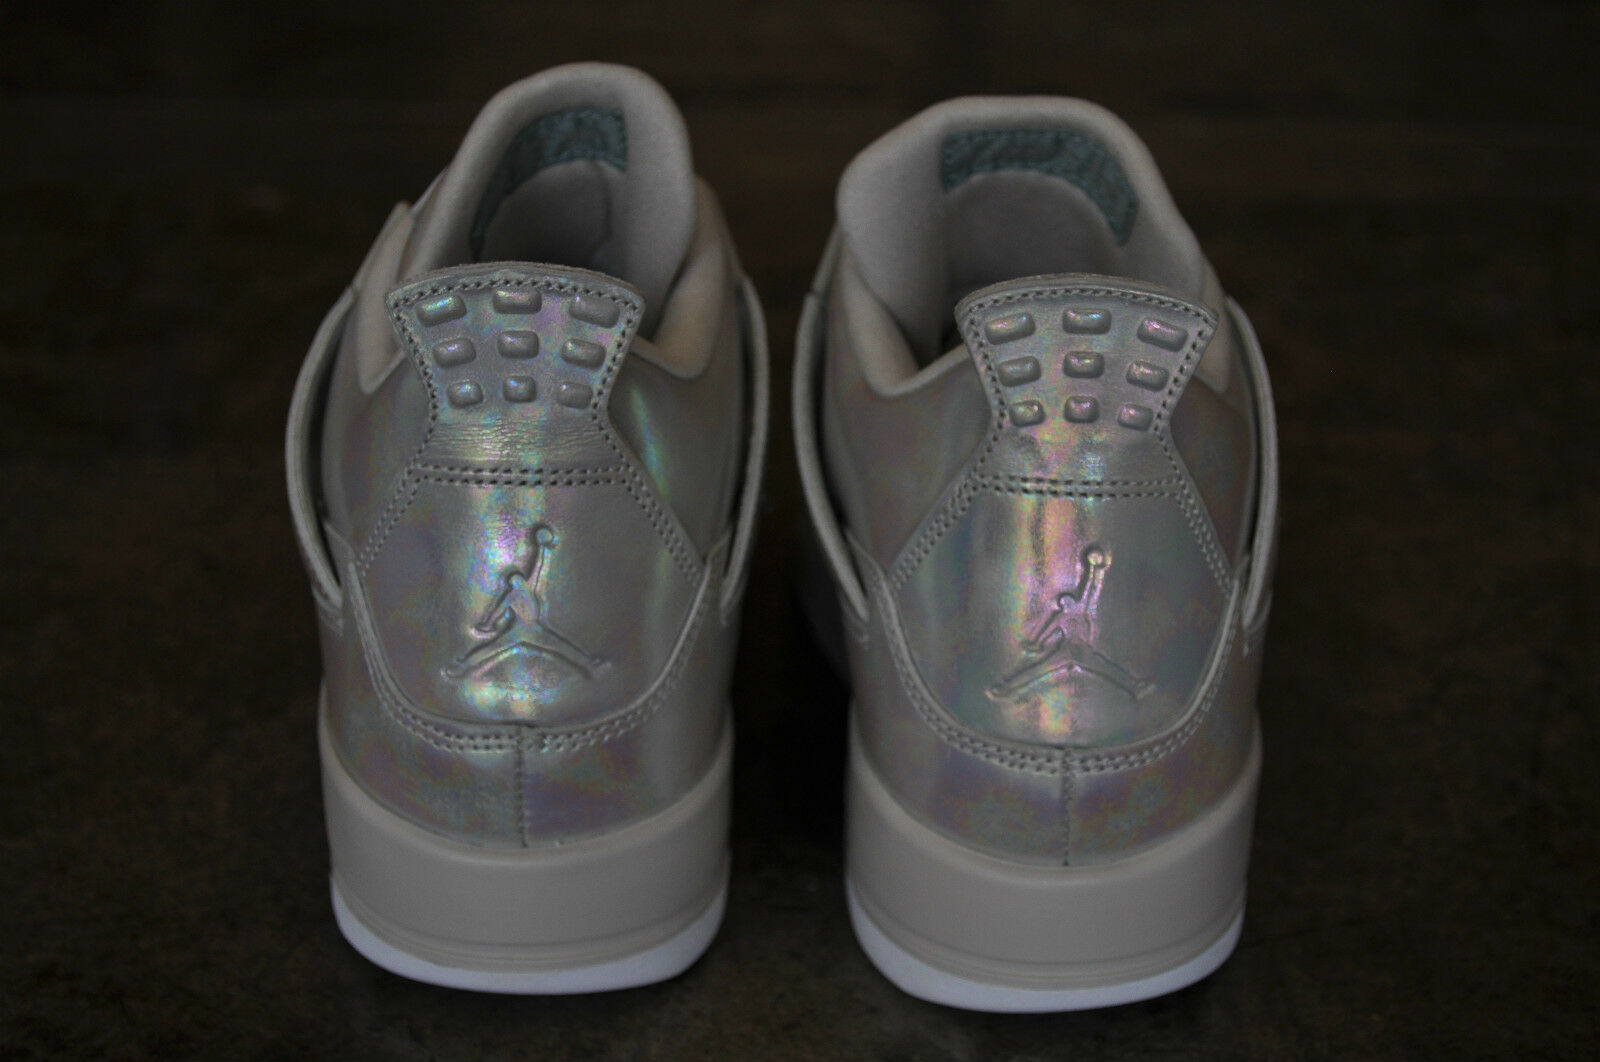 Nike Air Jordan 4 Retro Pearl GG (GS) - Light Light Light Bone Cannon-Light Bone 770318